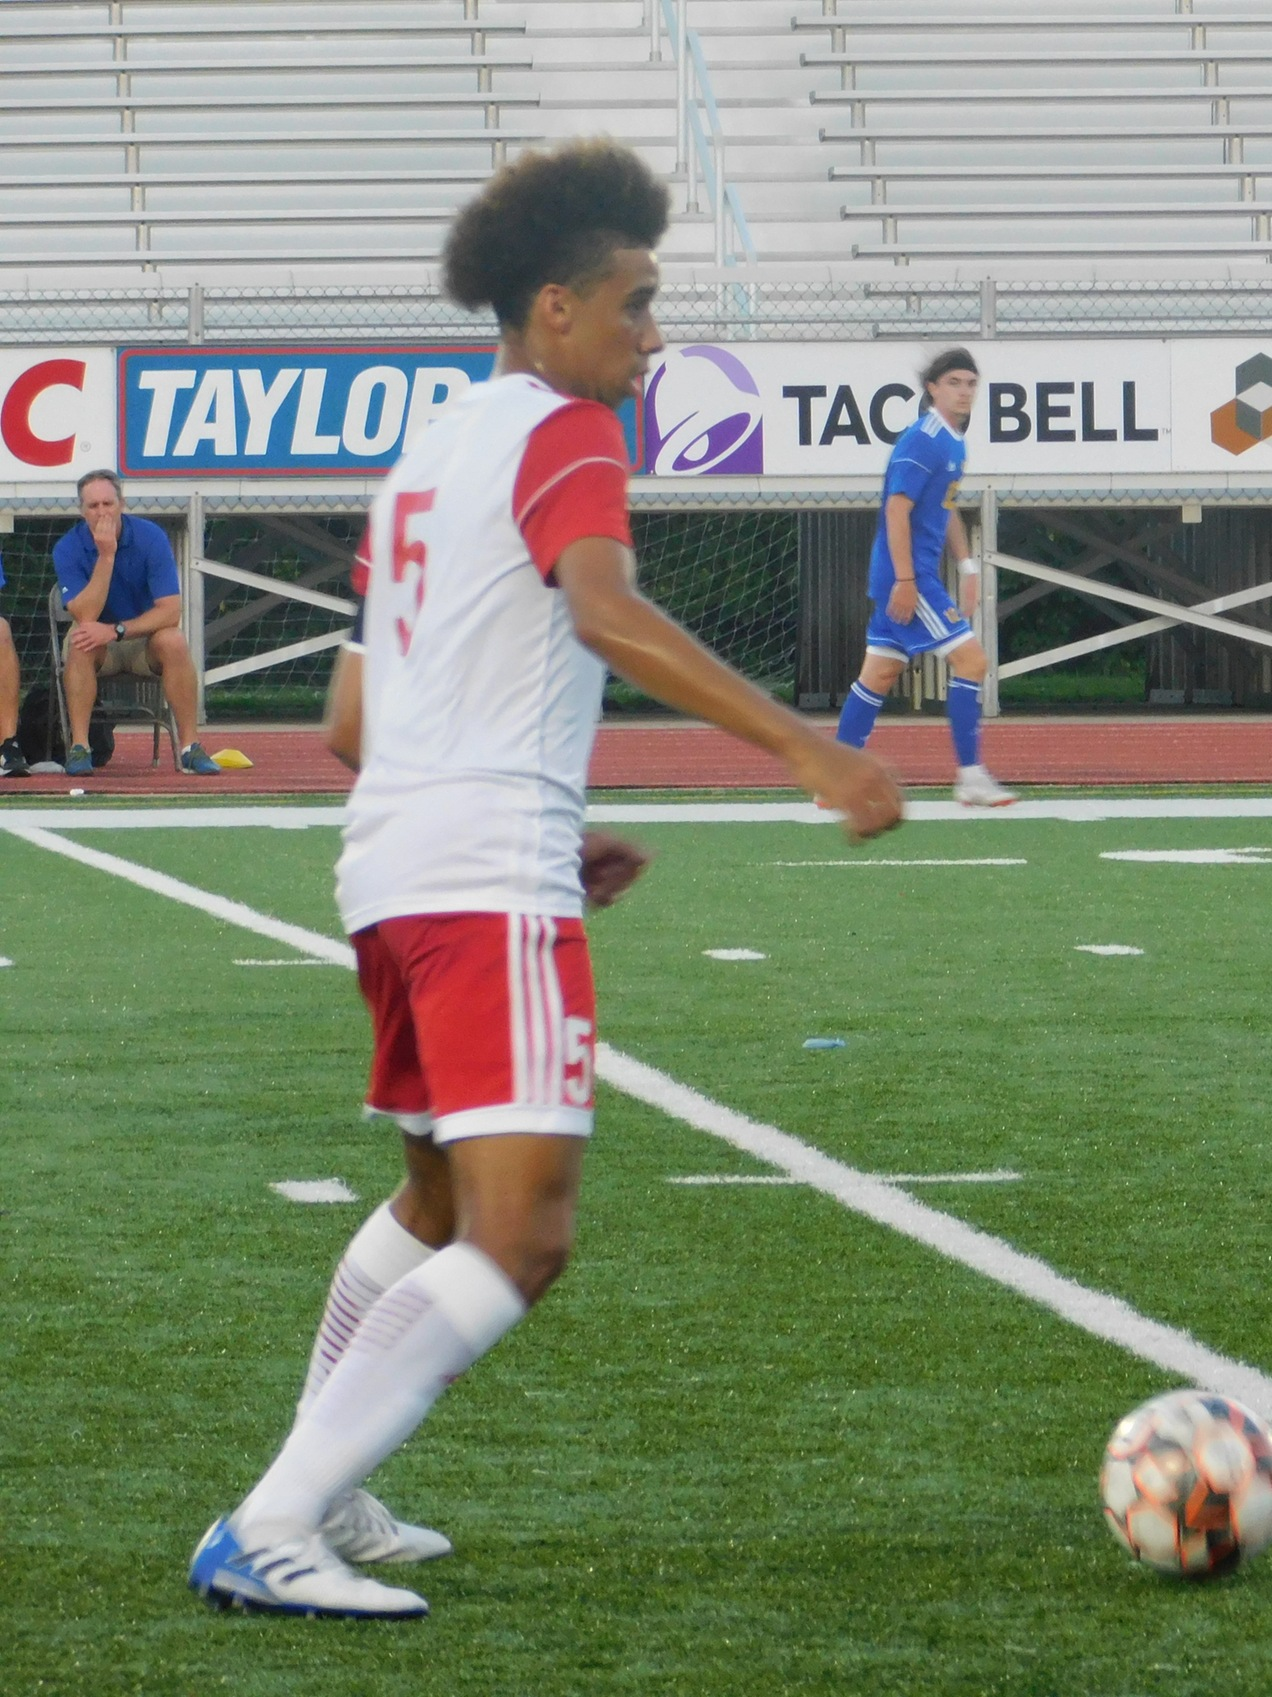 Men Outshoot, but Lose to St Charles